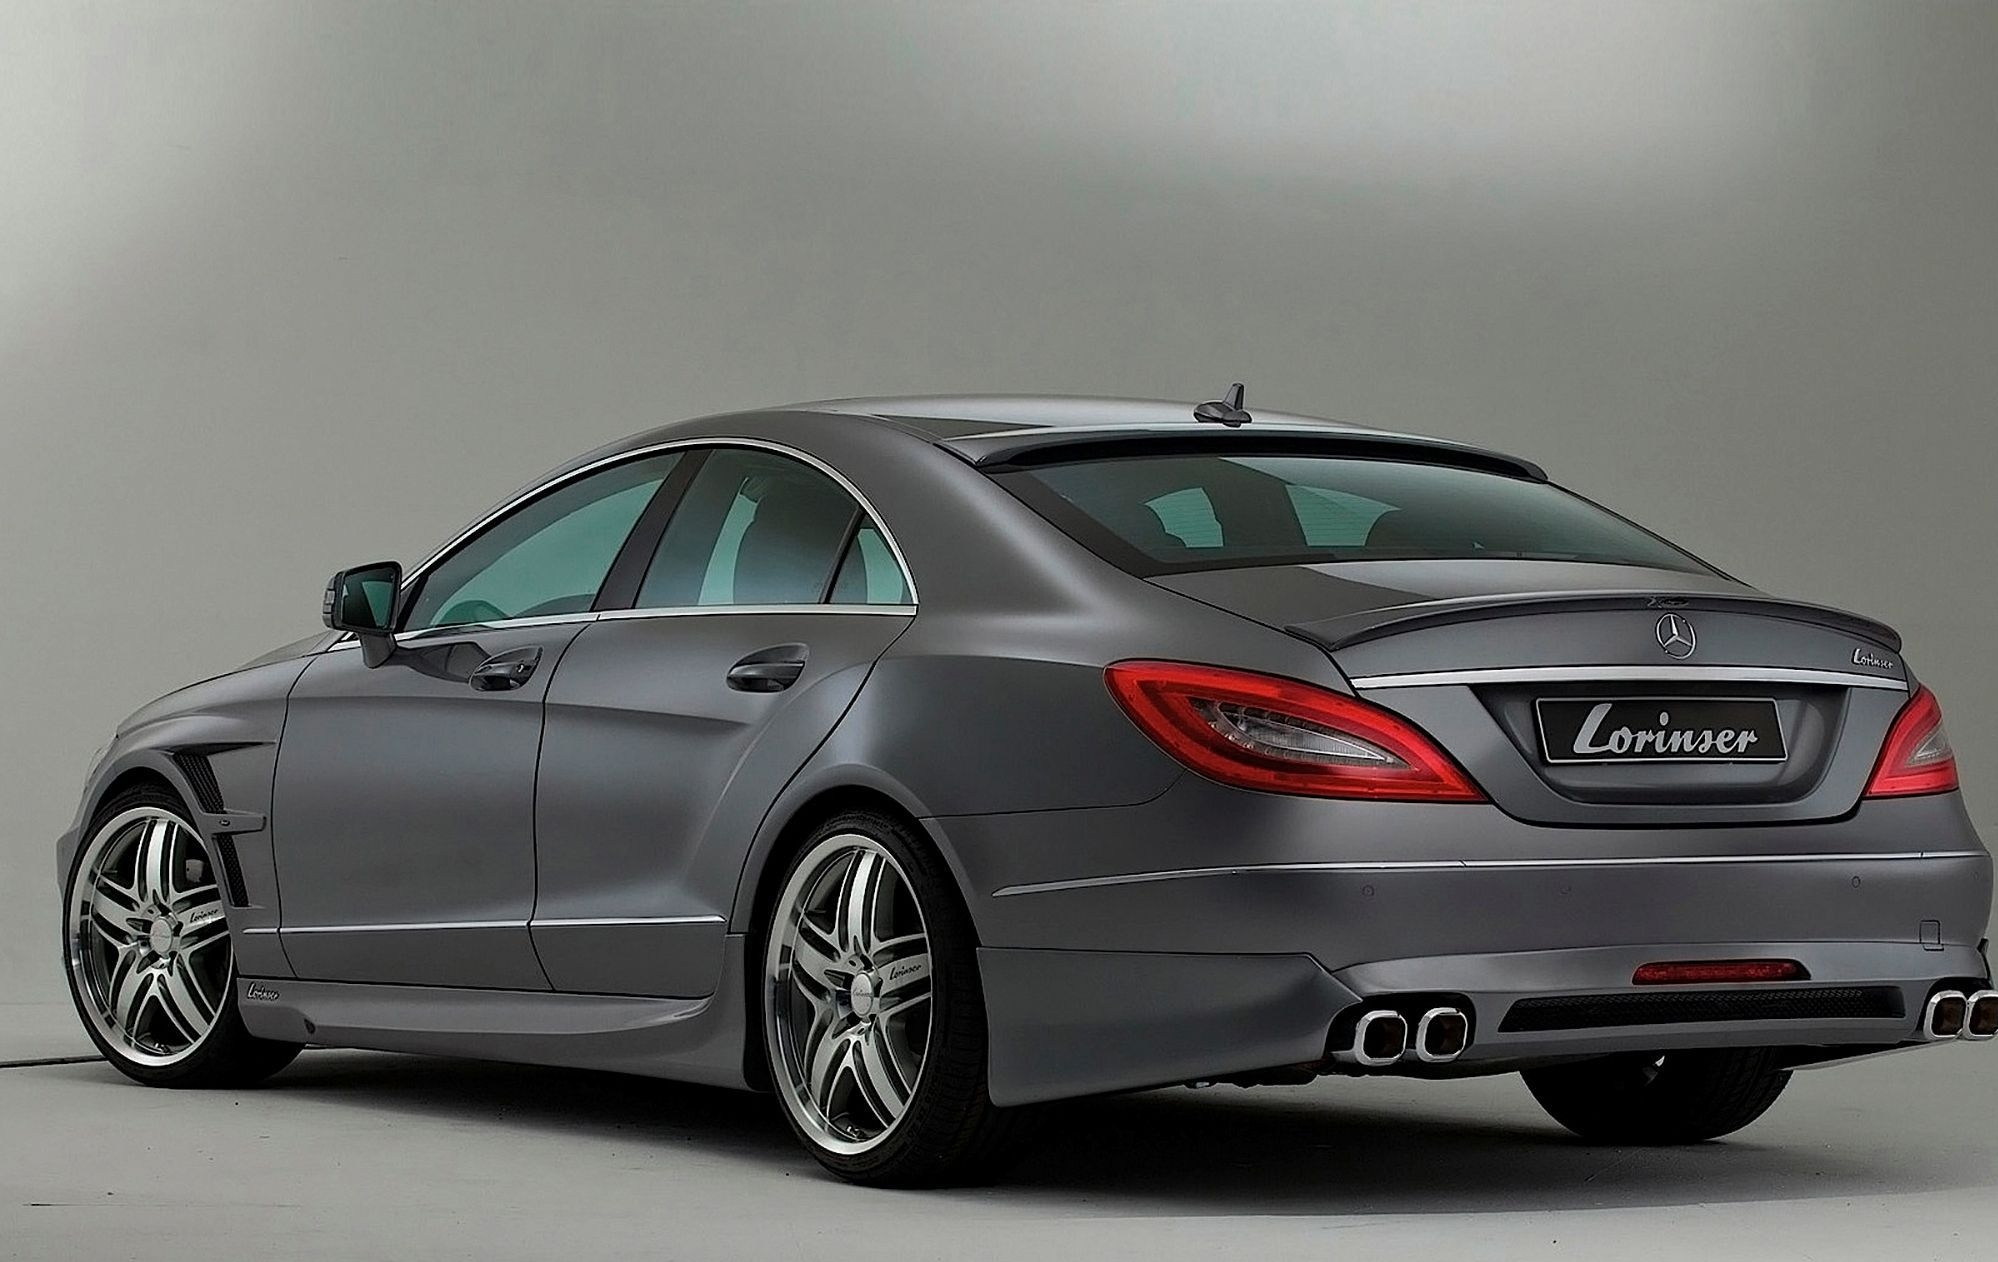 mercedes benz cls class wallpapers images photos pictures. Black Bedroom Furniture Sets. Home Design Ideas